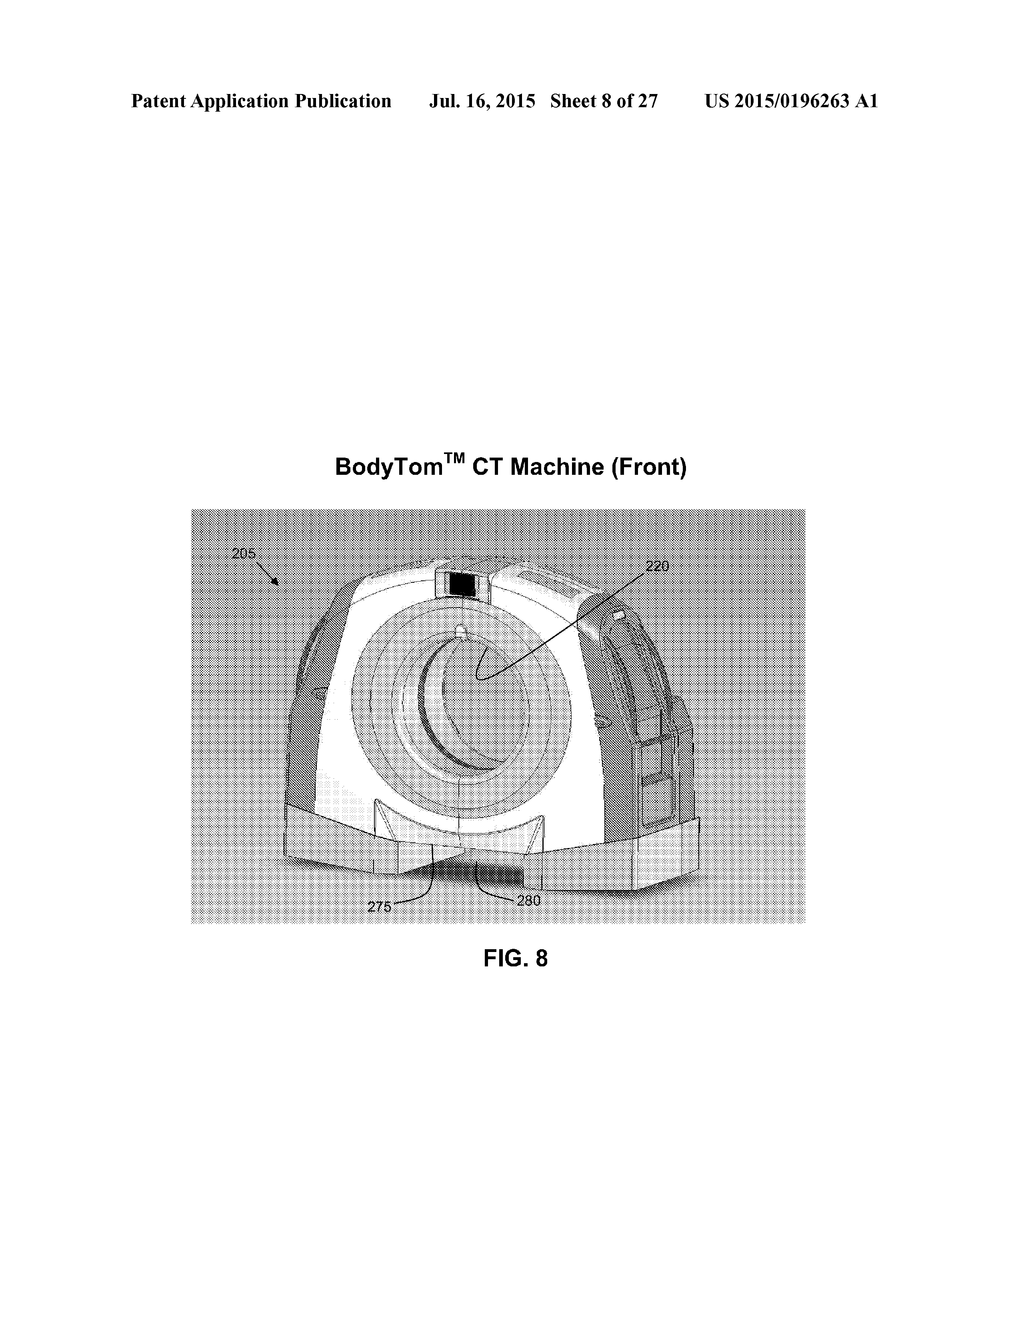 hight resolution of anatomical imaging system with centipede scanning drive bottom notch to accommodate base of patient support and motorized drive for transporting the